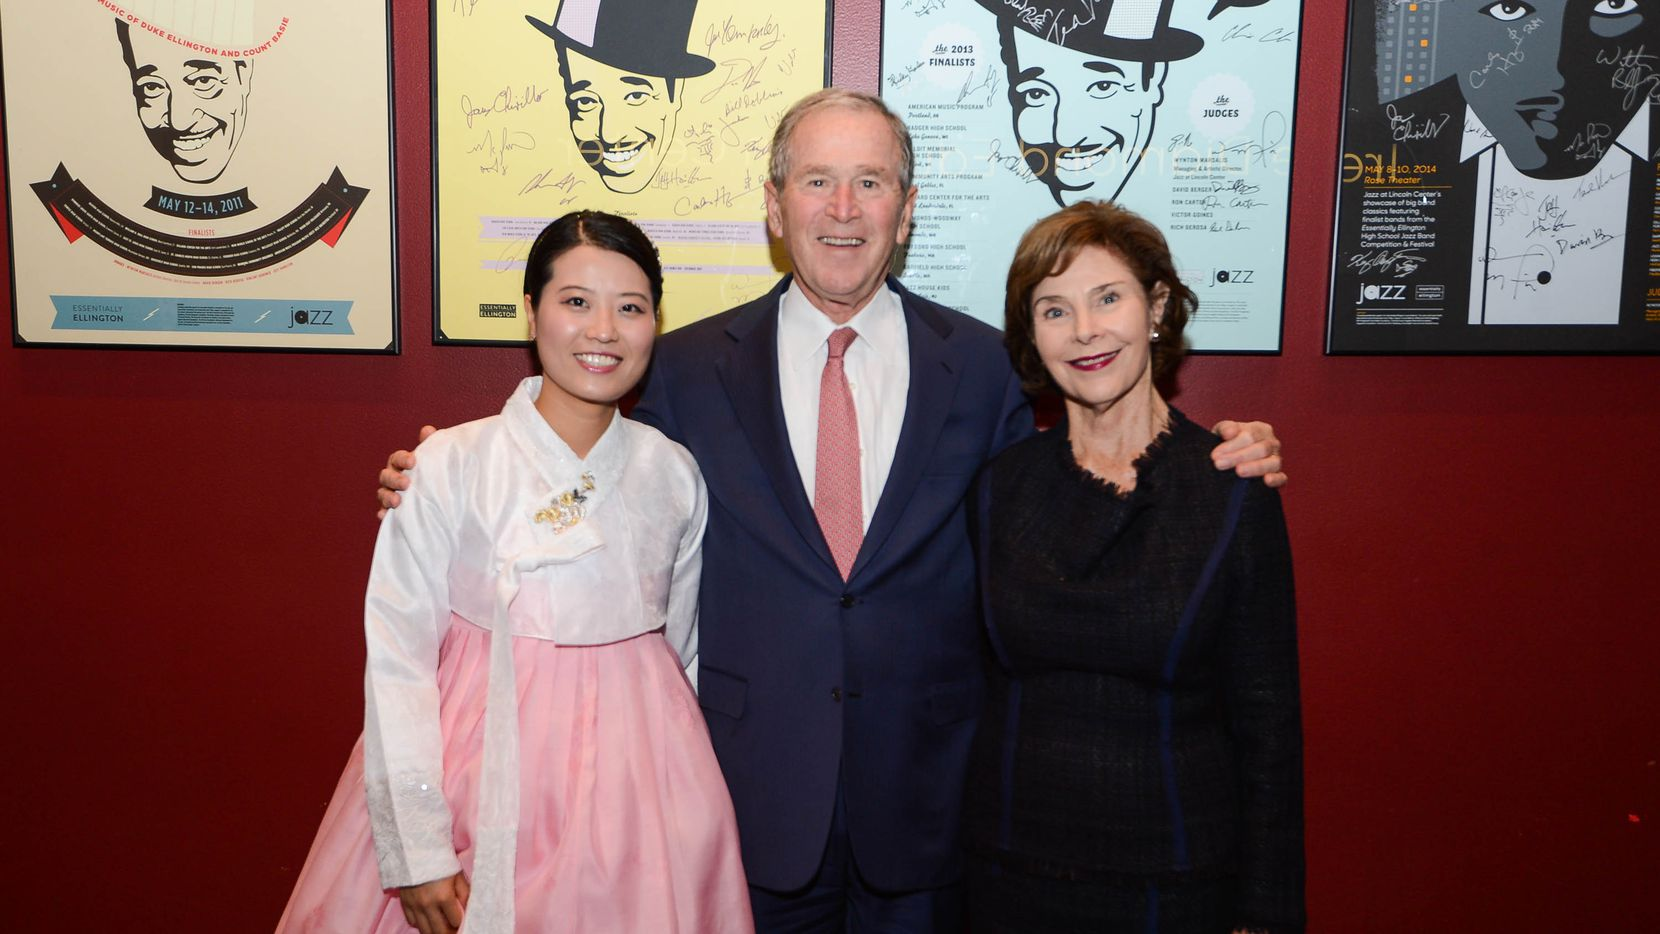 From left, Grace Jo, President  George W. Bush and Laura Bush at the GWBPC Spirit of Liberty Event in New York, NY. Grace Jo received a North Korean Freedom Scholarship in 2017 and 2018. Photo by Grant Miller